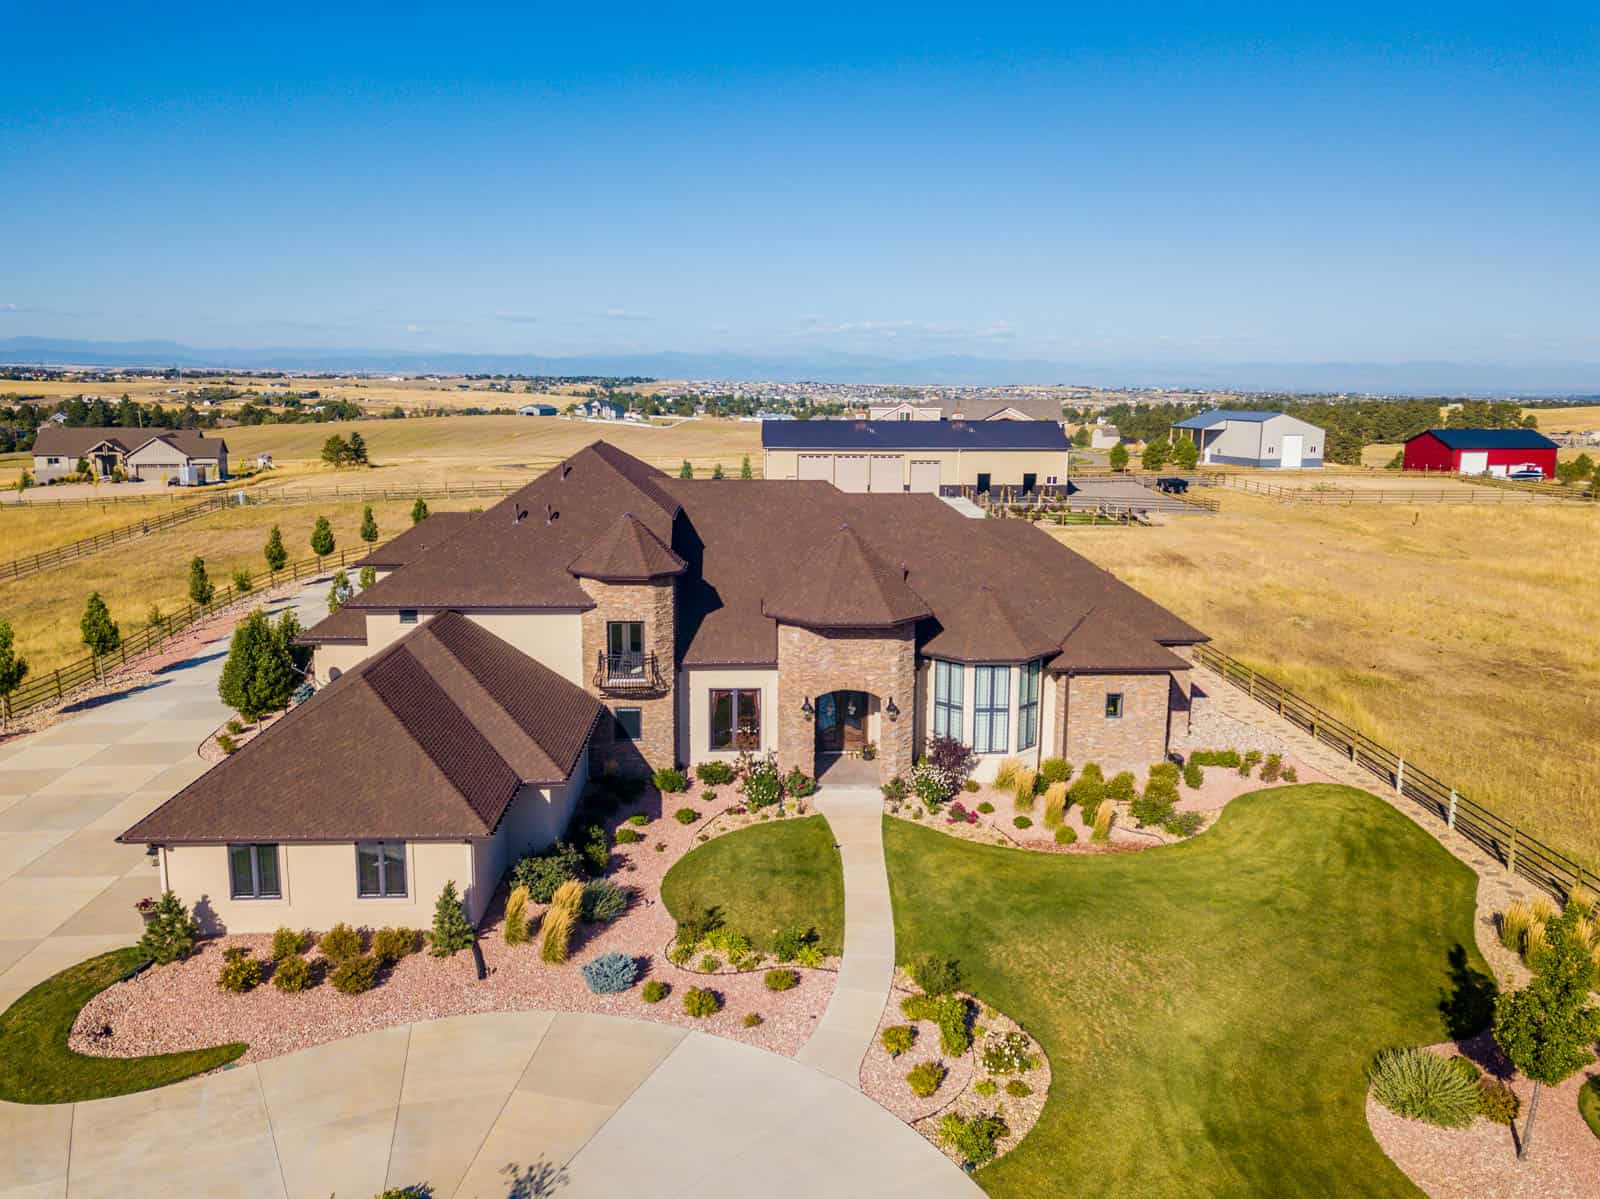 drone photo of residential property in Parker, CO